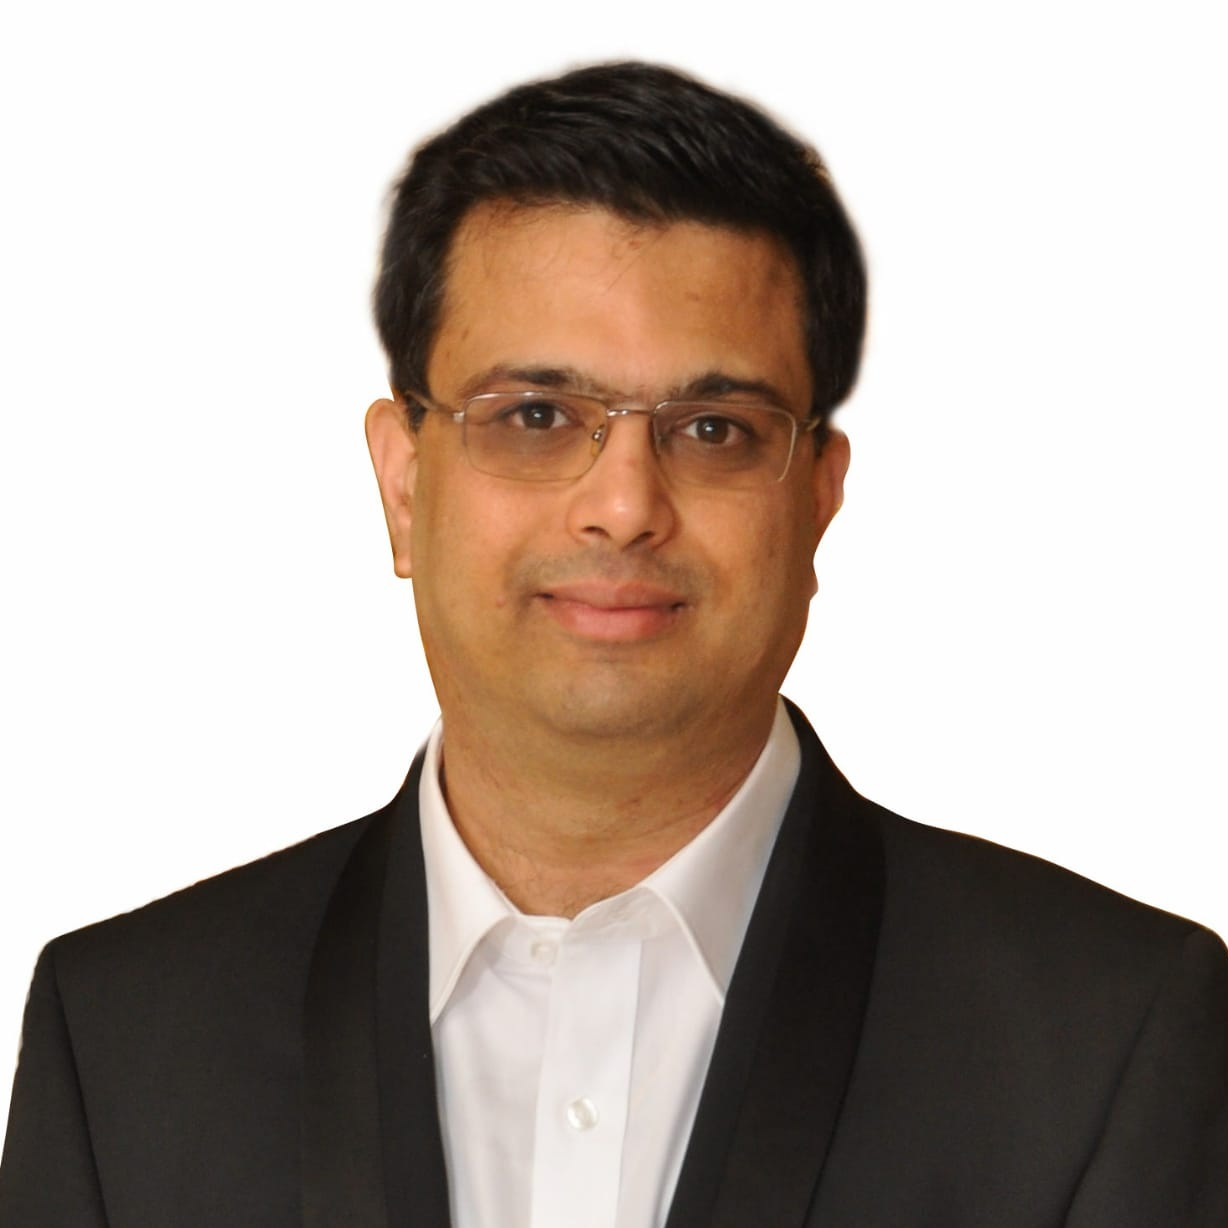 Neel Bhatia - General ManagerIntel Corporation